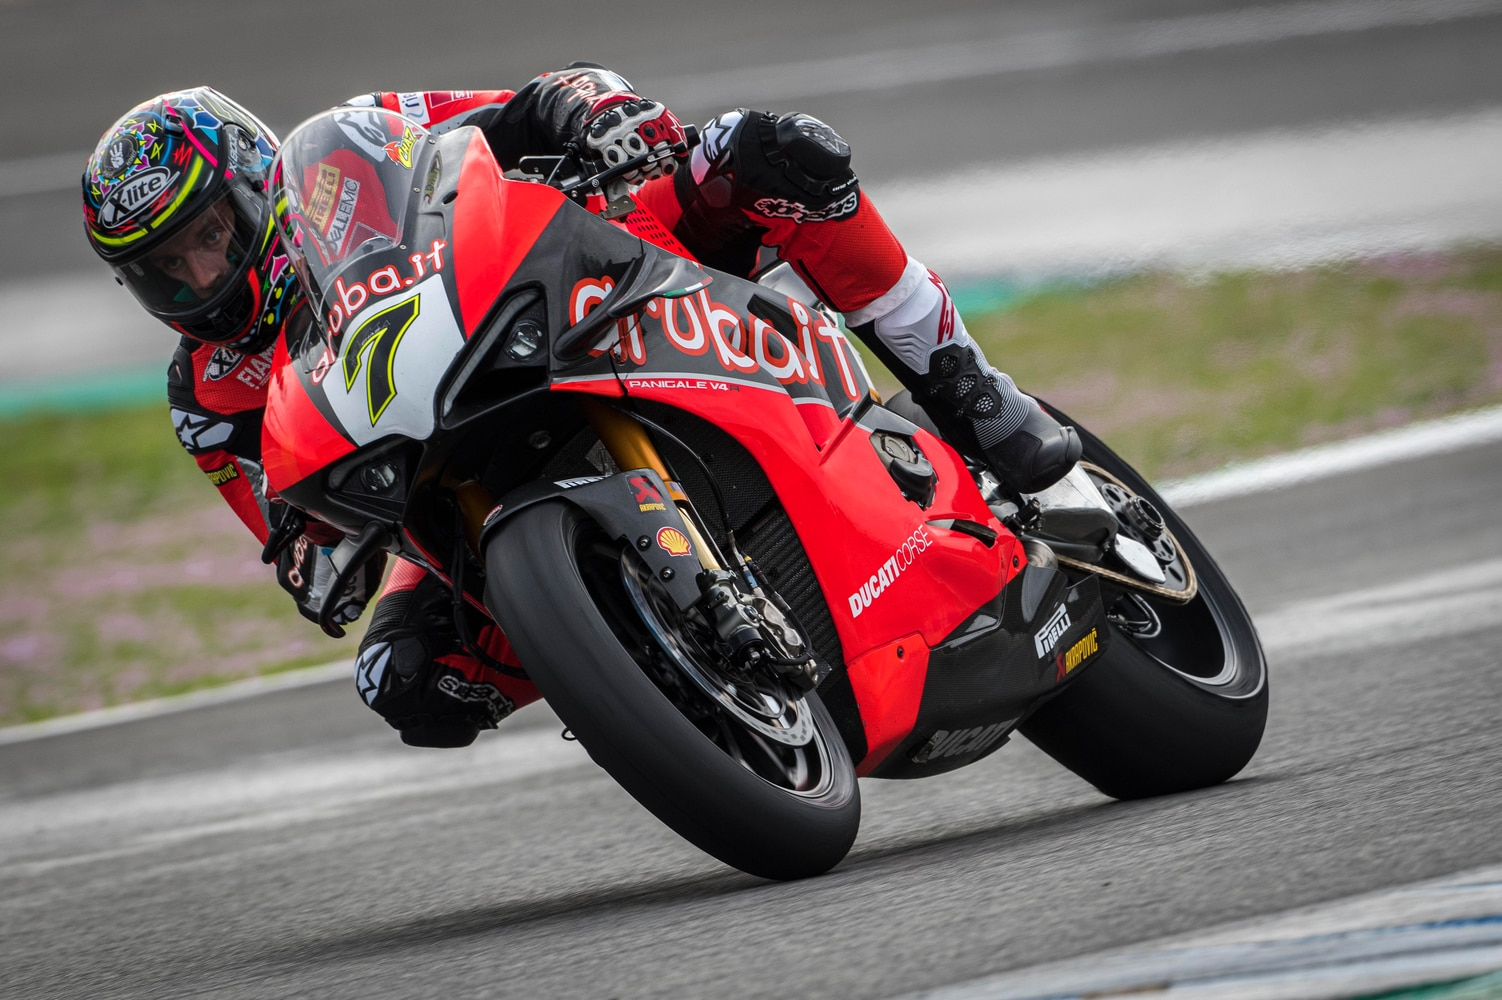 Www Cia Corse Fr two days of testing conclude at jerez de la frontera for